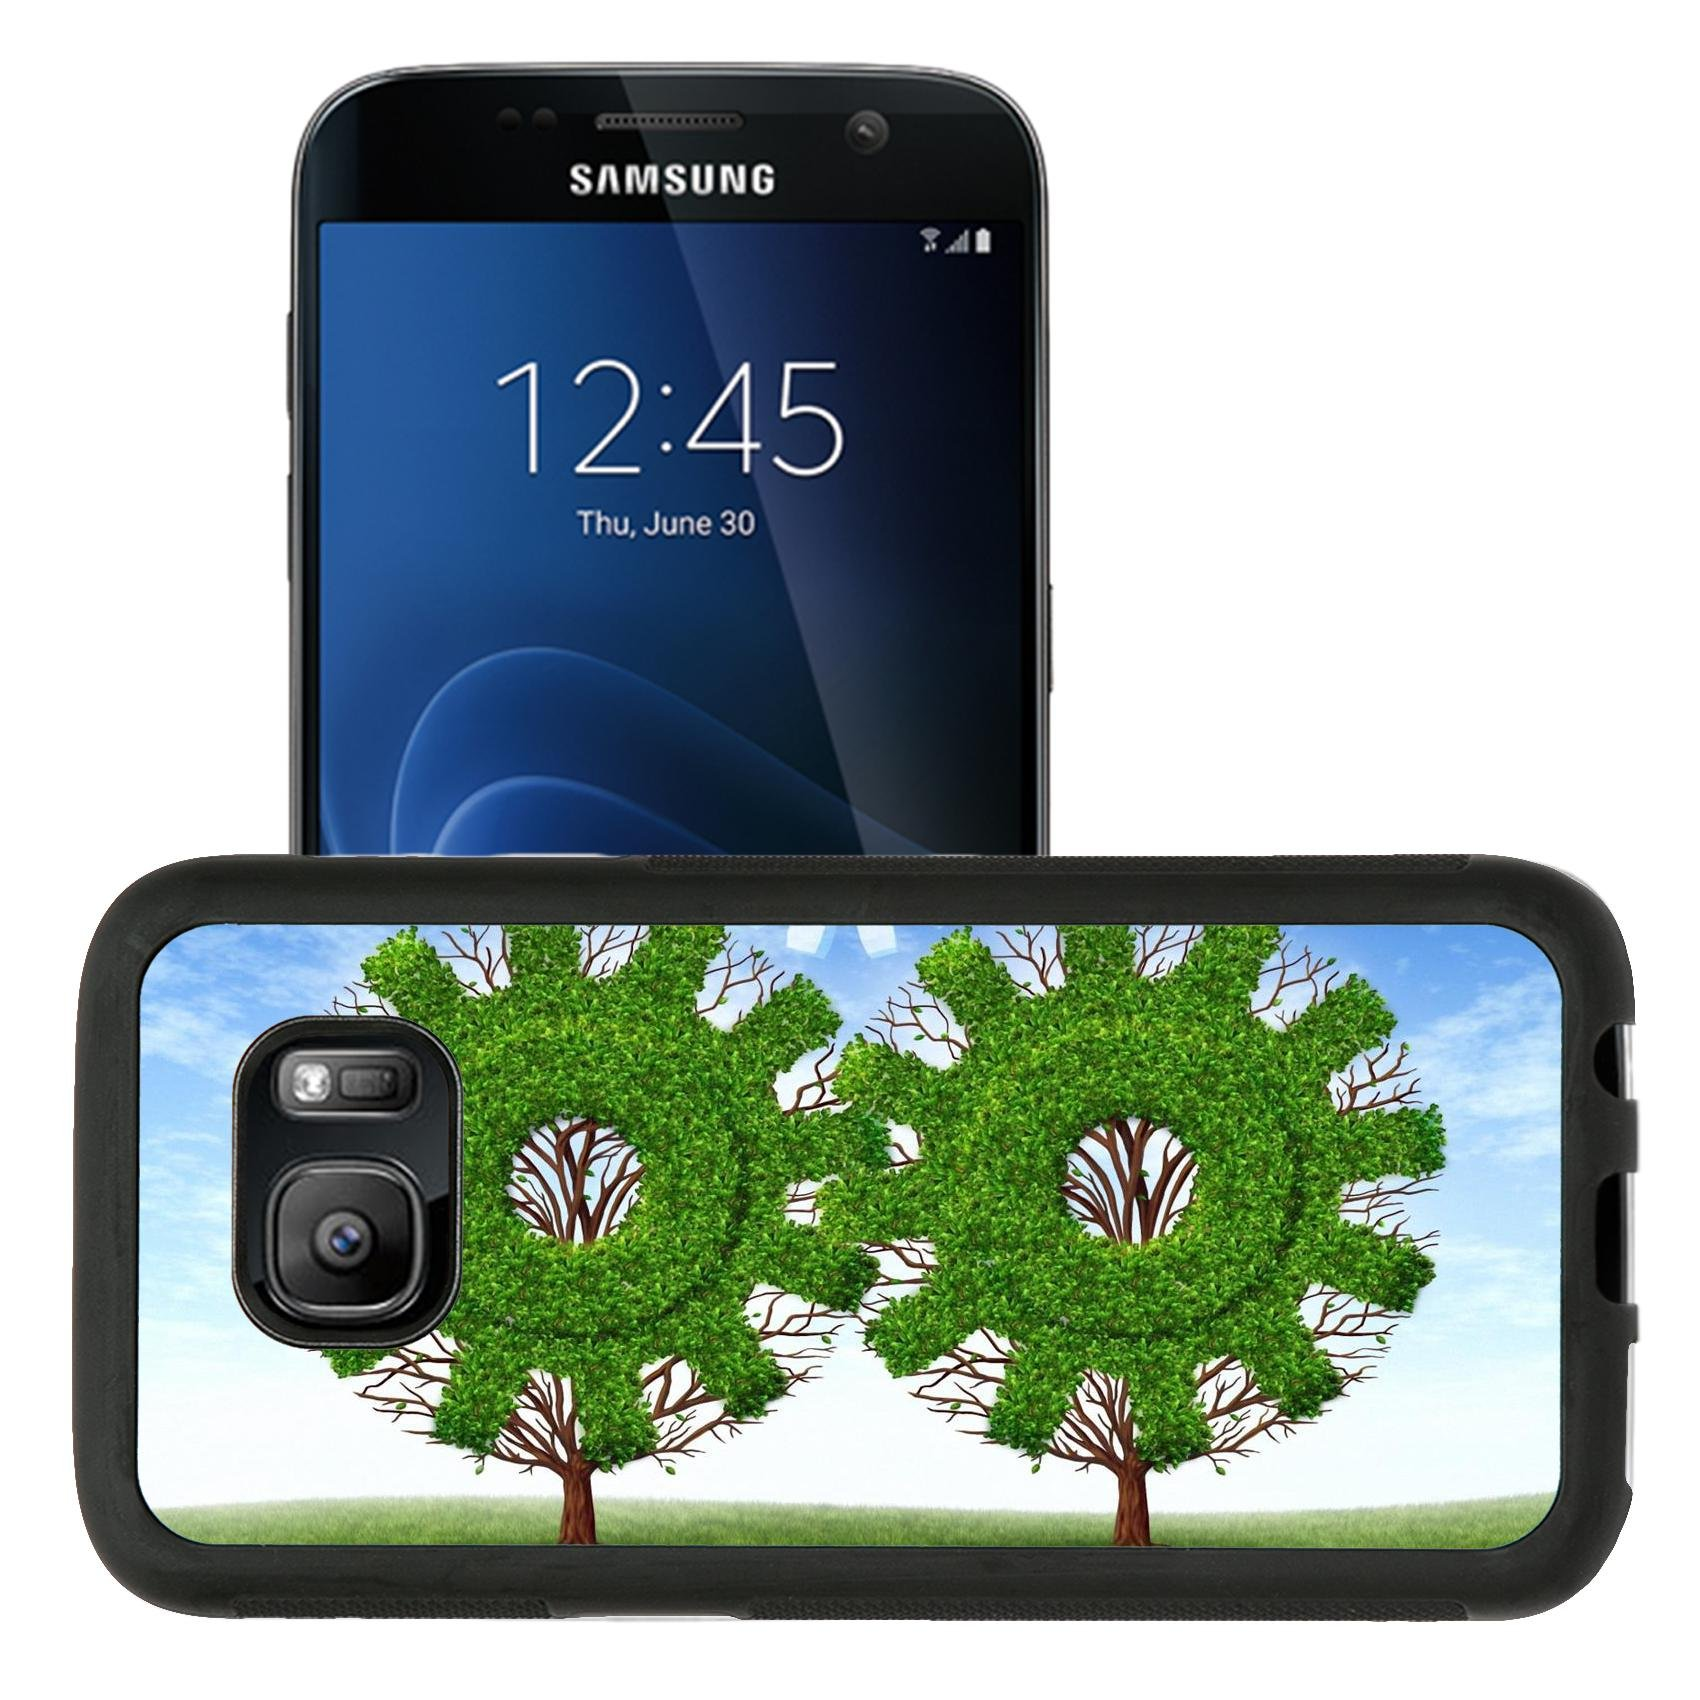 Liili Premium Samsung Galaxy S7 Aluminum Snap Case Cloud computing growth and the future of virtual storage and internet based remote desktop illustrated by trees and clouds in the sh by Liili